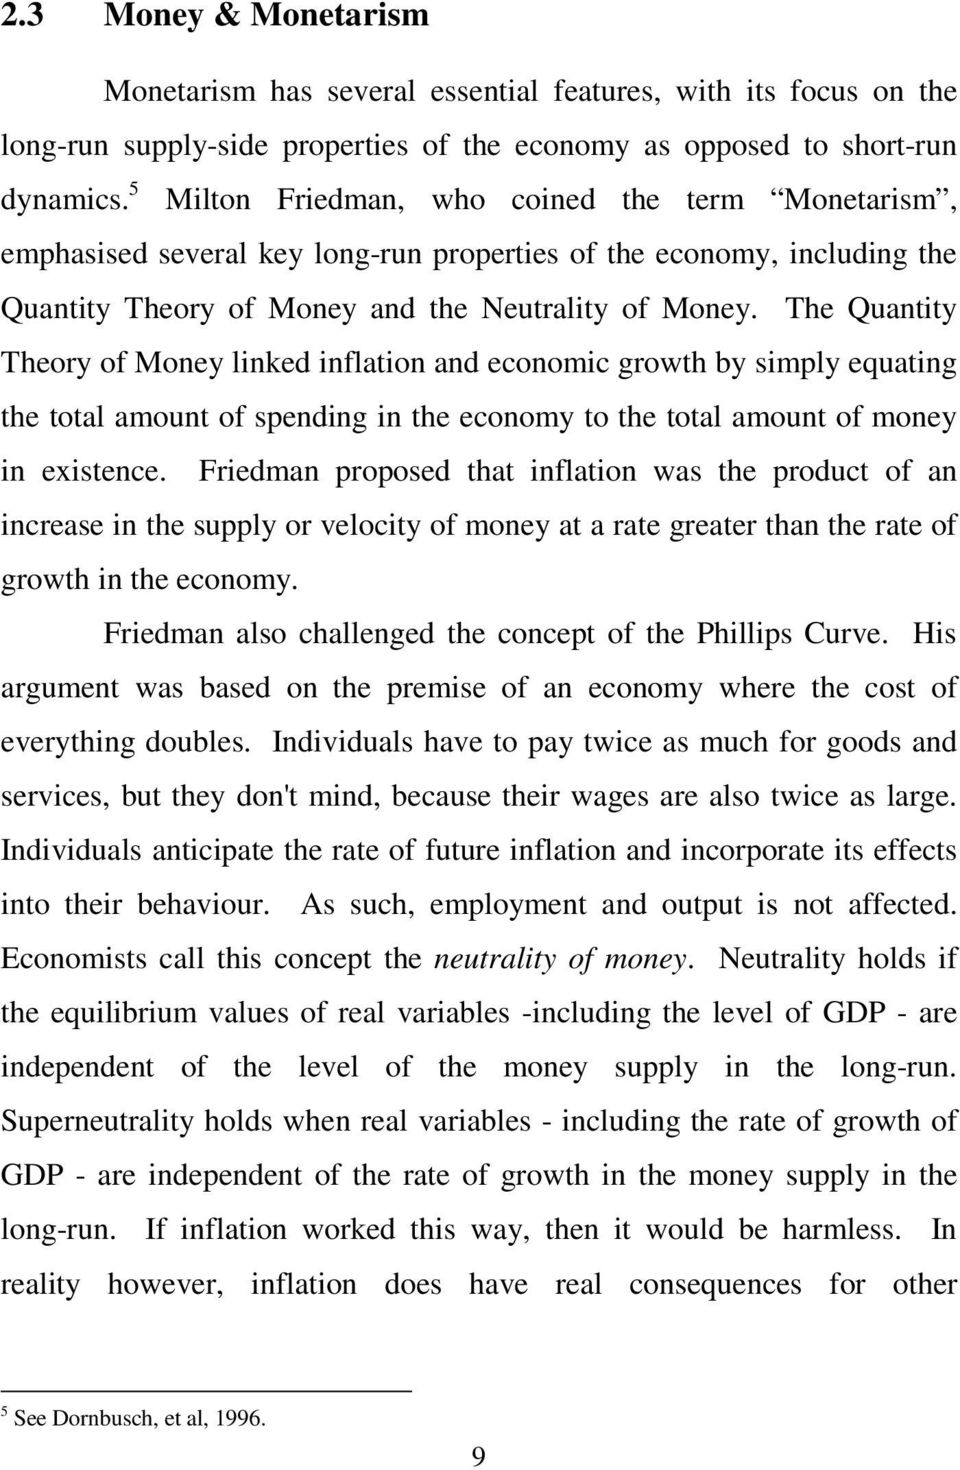 The Quantity Theory of Money linked inflation and economic growth by simply equating the total amount of spending in the economy to the total amount of money in existence.